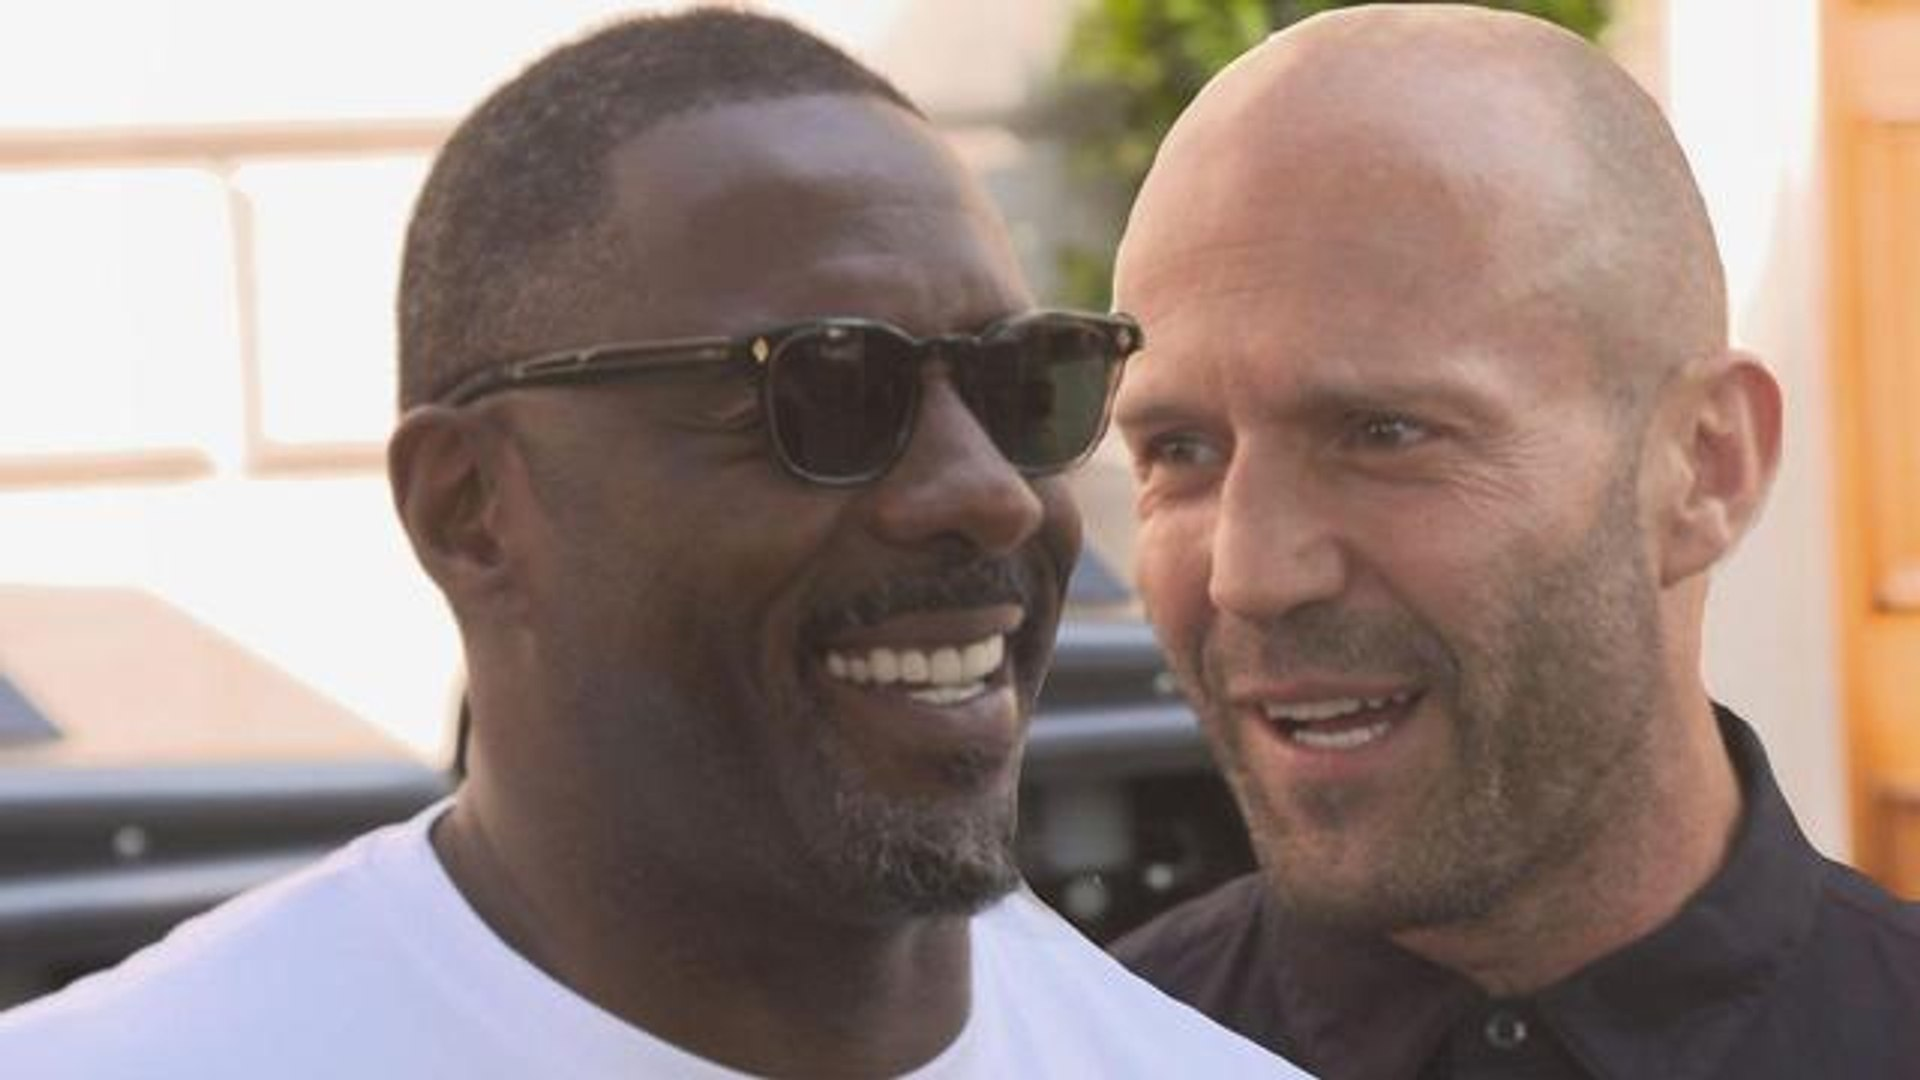 On Set With 'Hobbs & Shaw' Stars Idris Elba and Jason Statham (Exclusive)